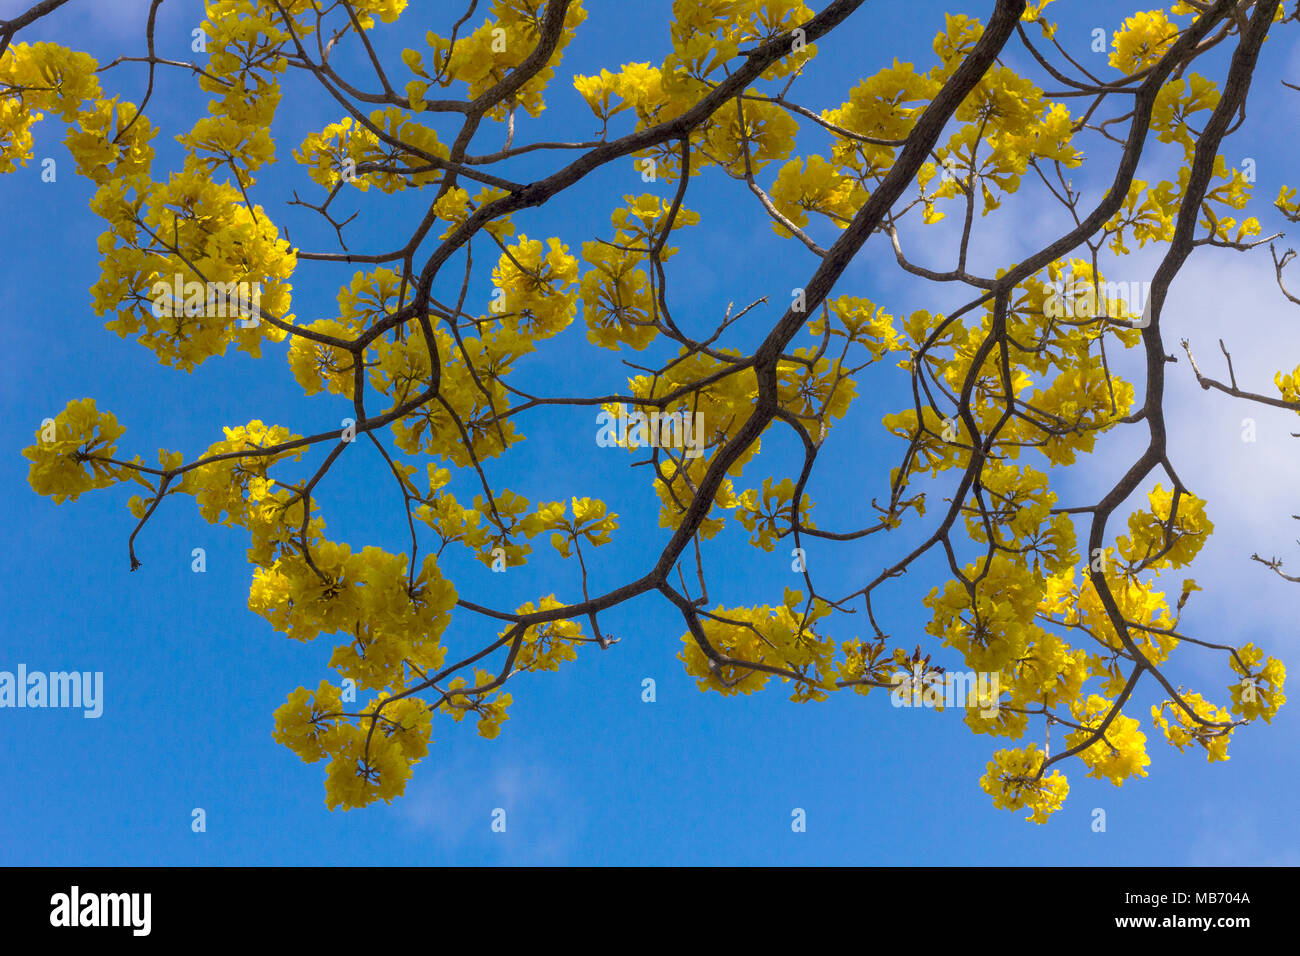 Beautiful Yellow Flowering Tree The Guayacan Tree With Large